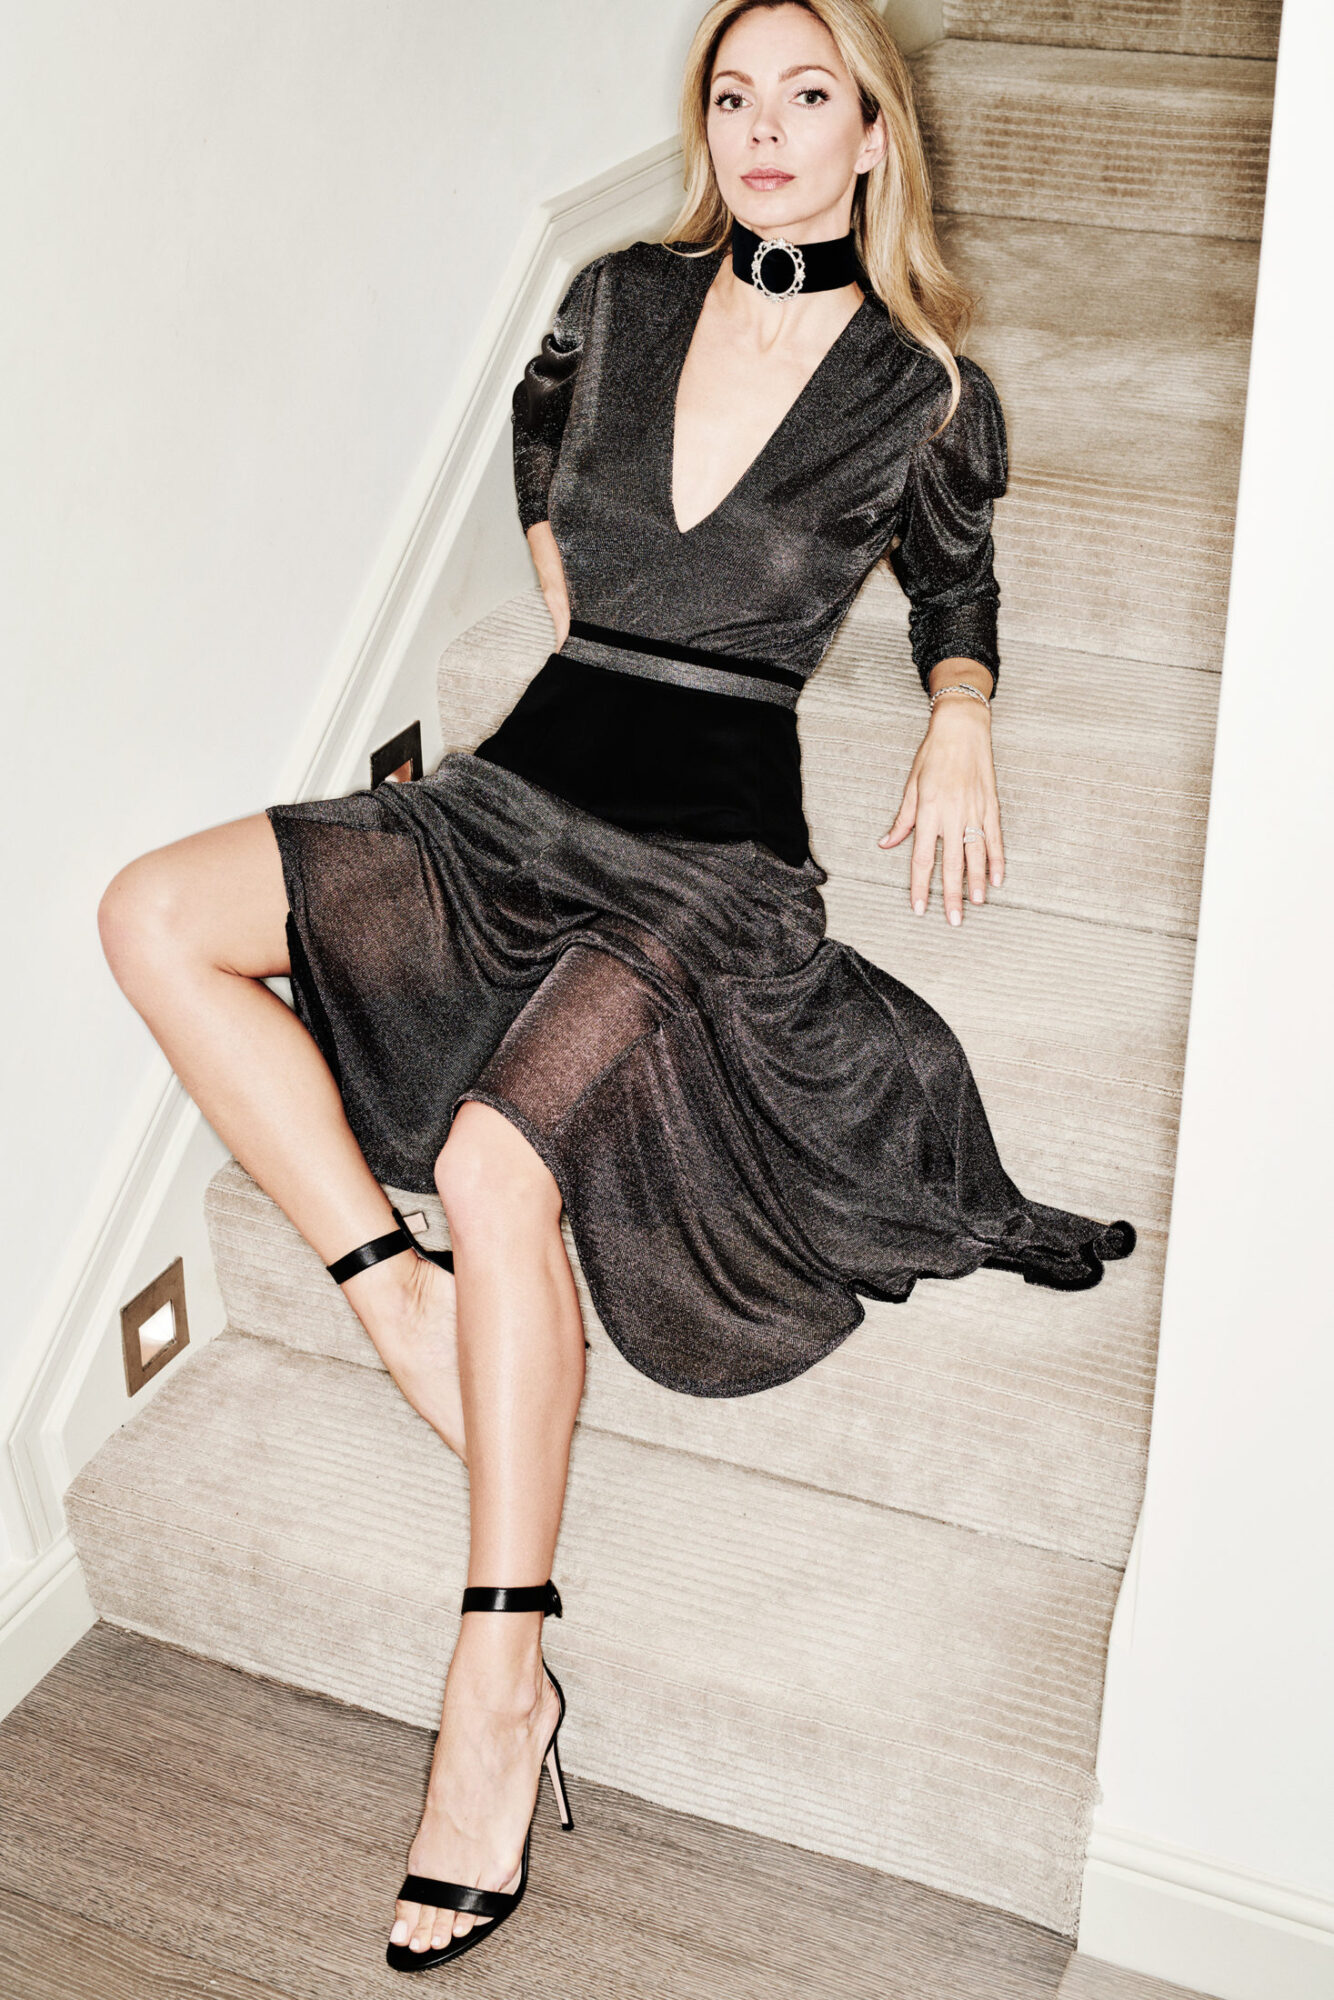 Dress: DONATA DAVIDOFF, Jewellery: DAVID MORRIS, Photo: RASMUS MOGENSEN, Makeup: RUBY HAMMER, Hair: SHIMA AT SALON SLOANE